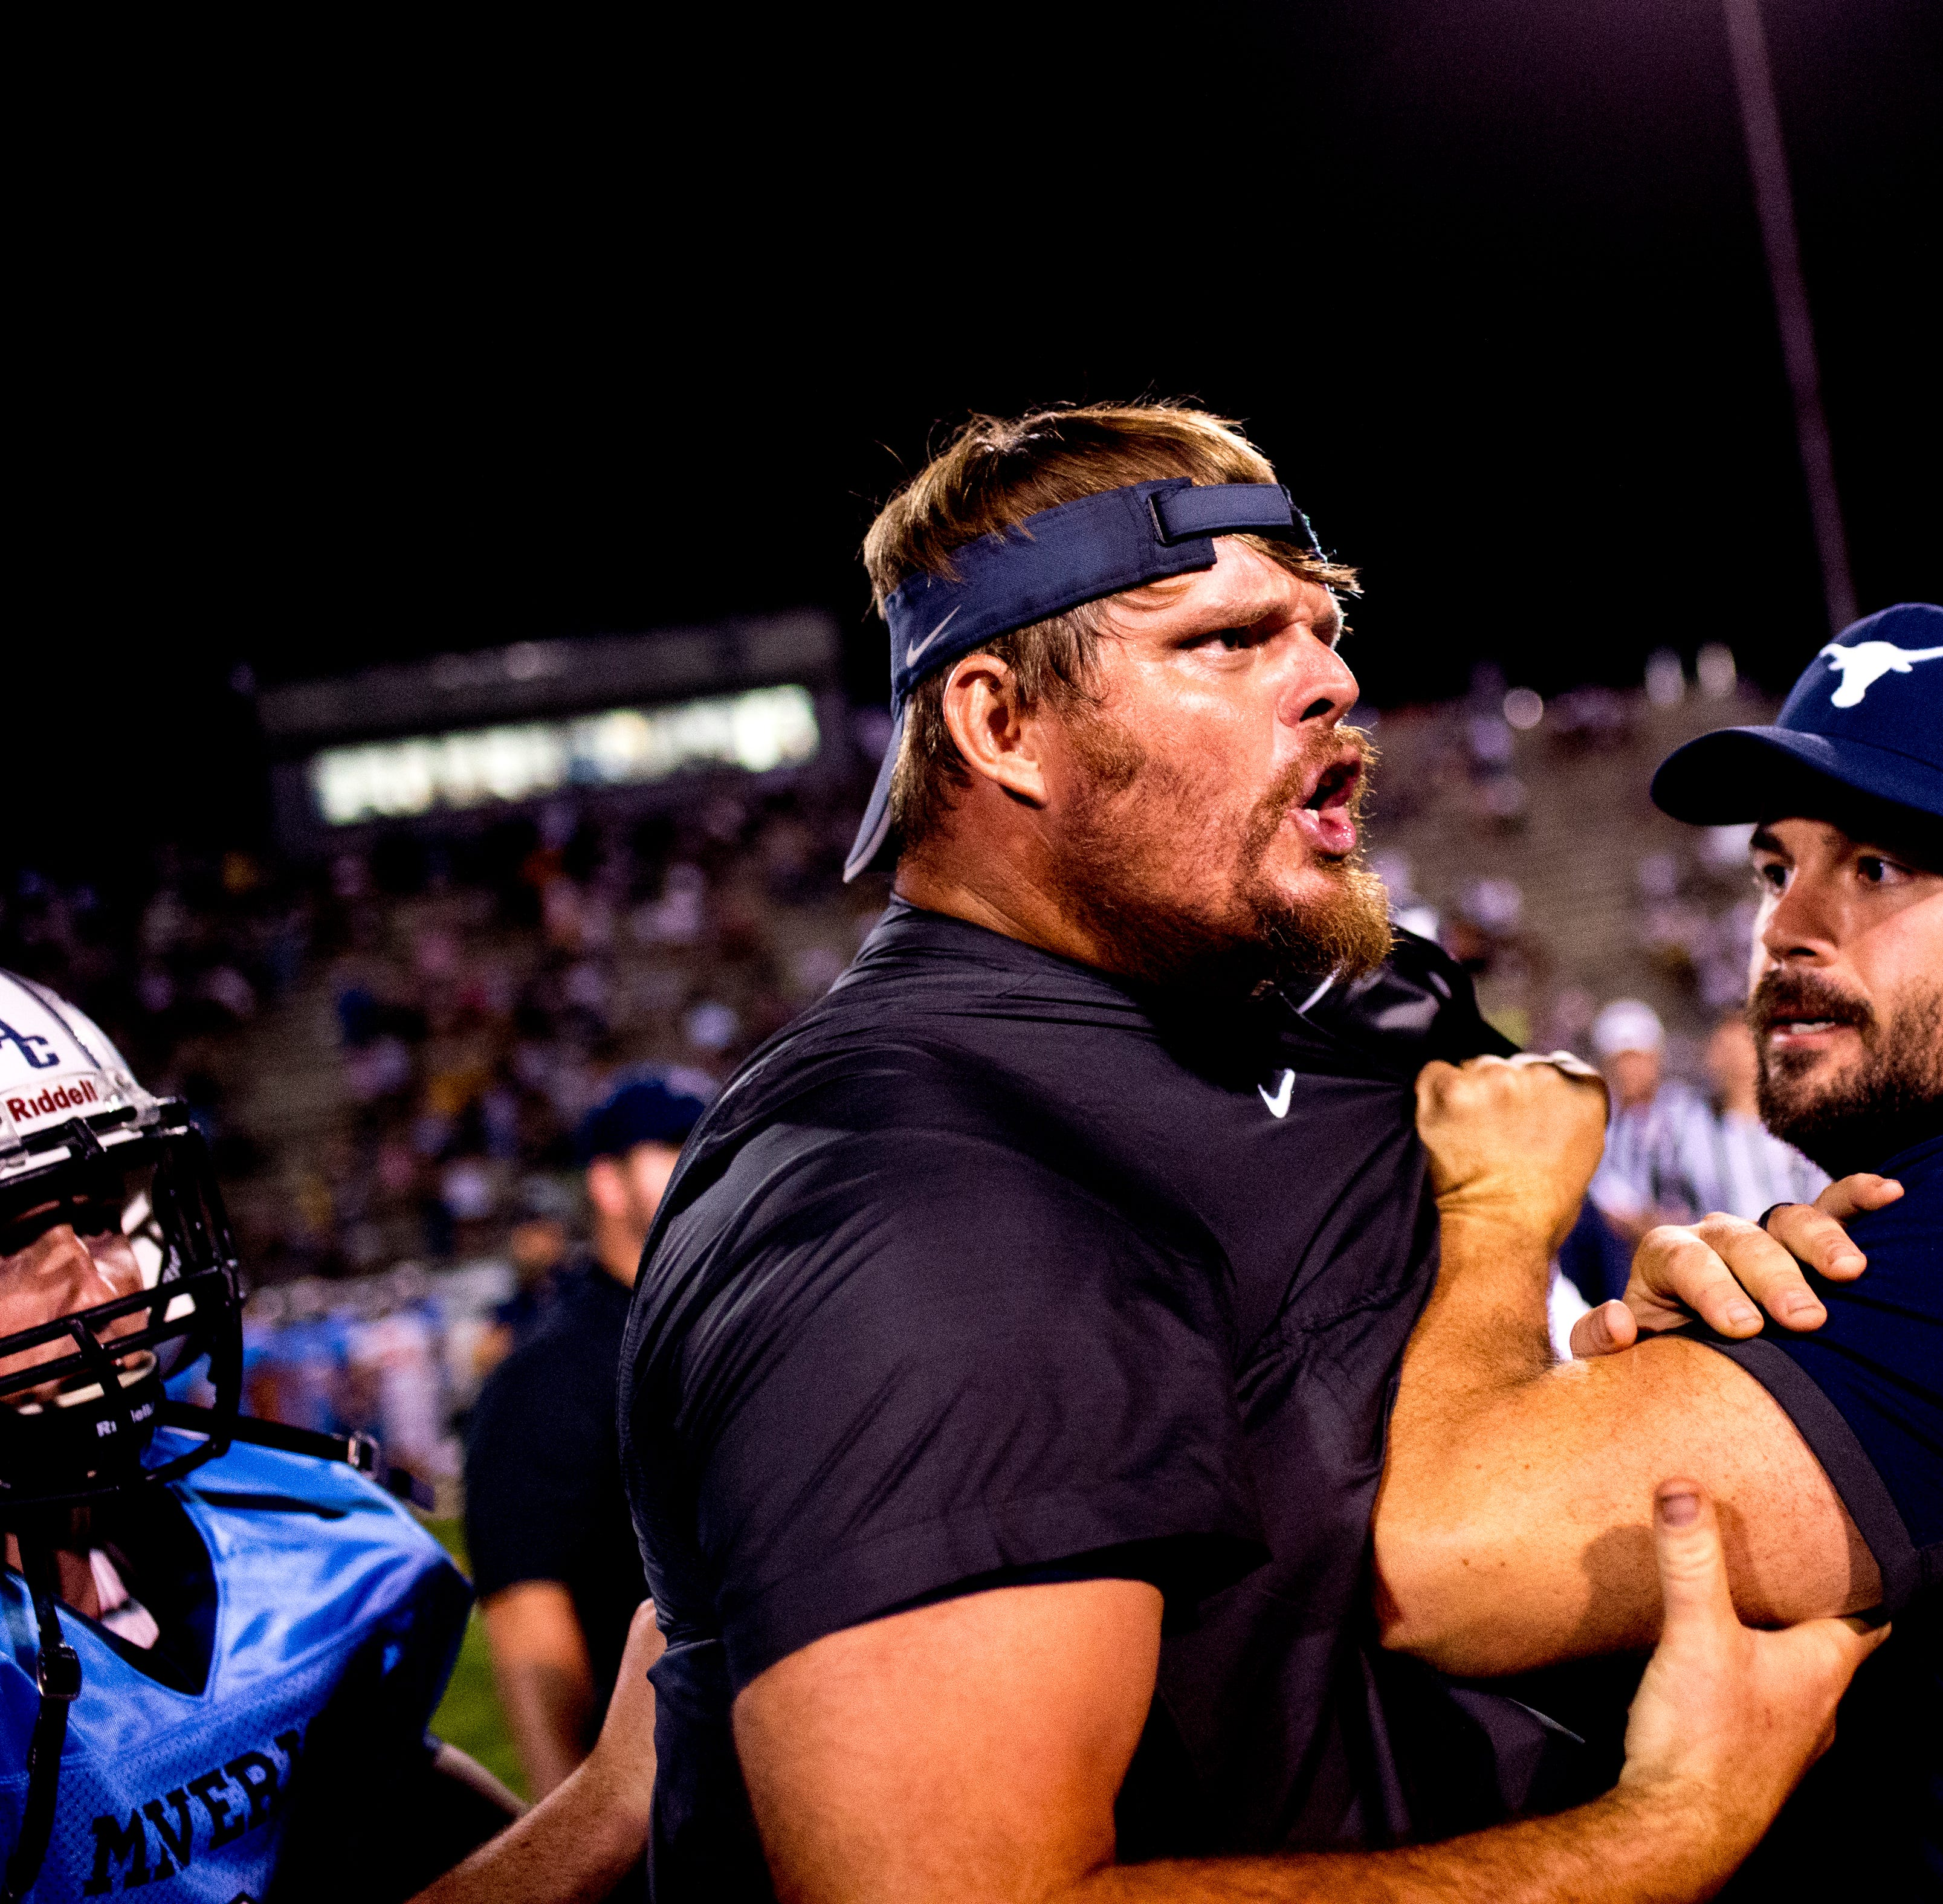 Anderson County, Clinton football coaches suspended following altercation after rivalry game